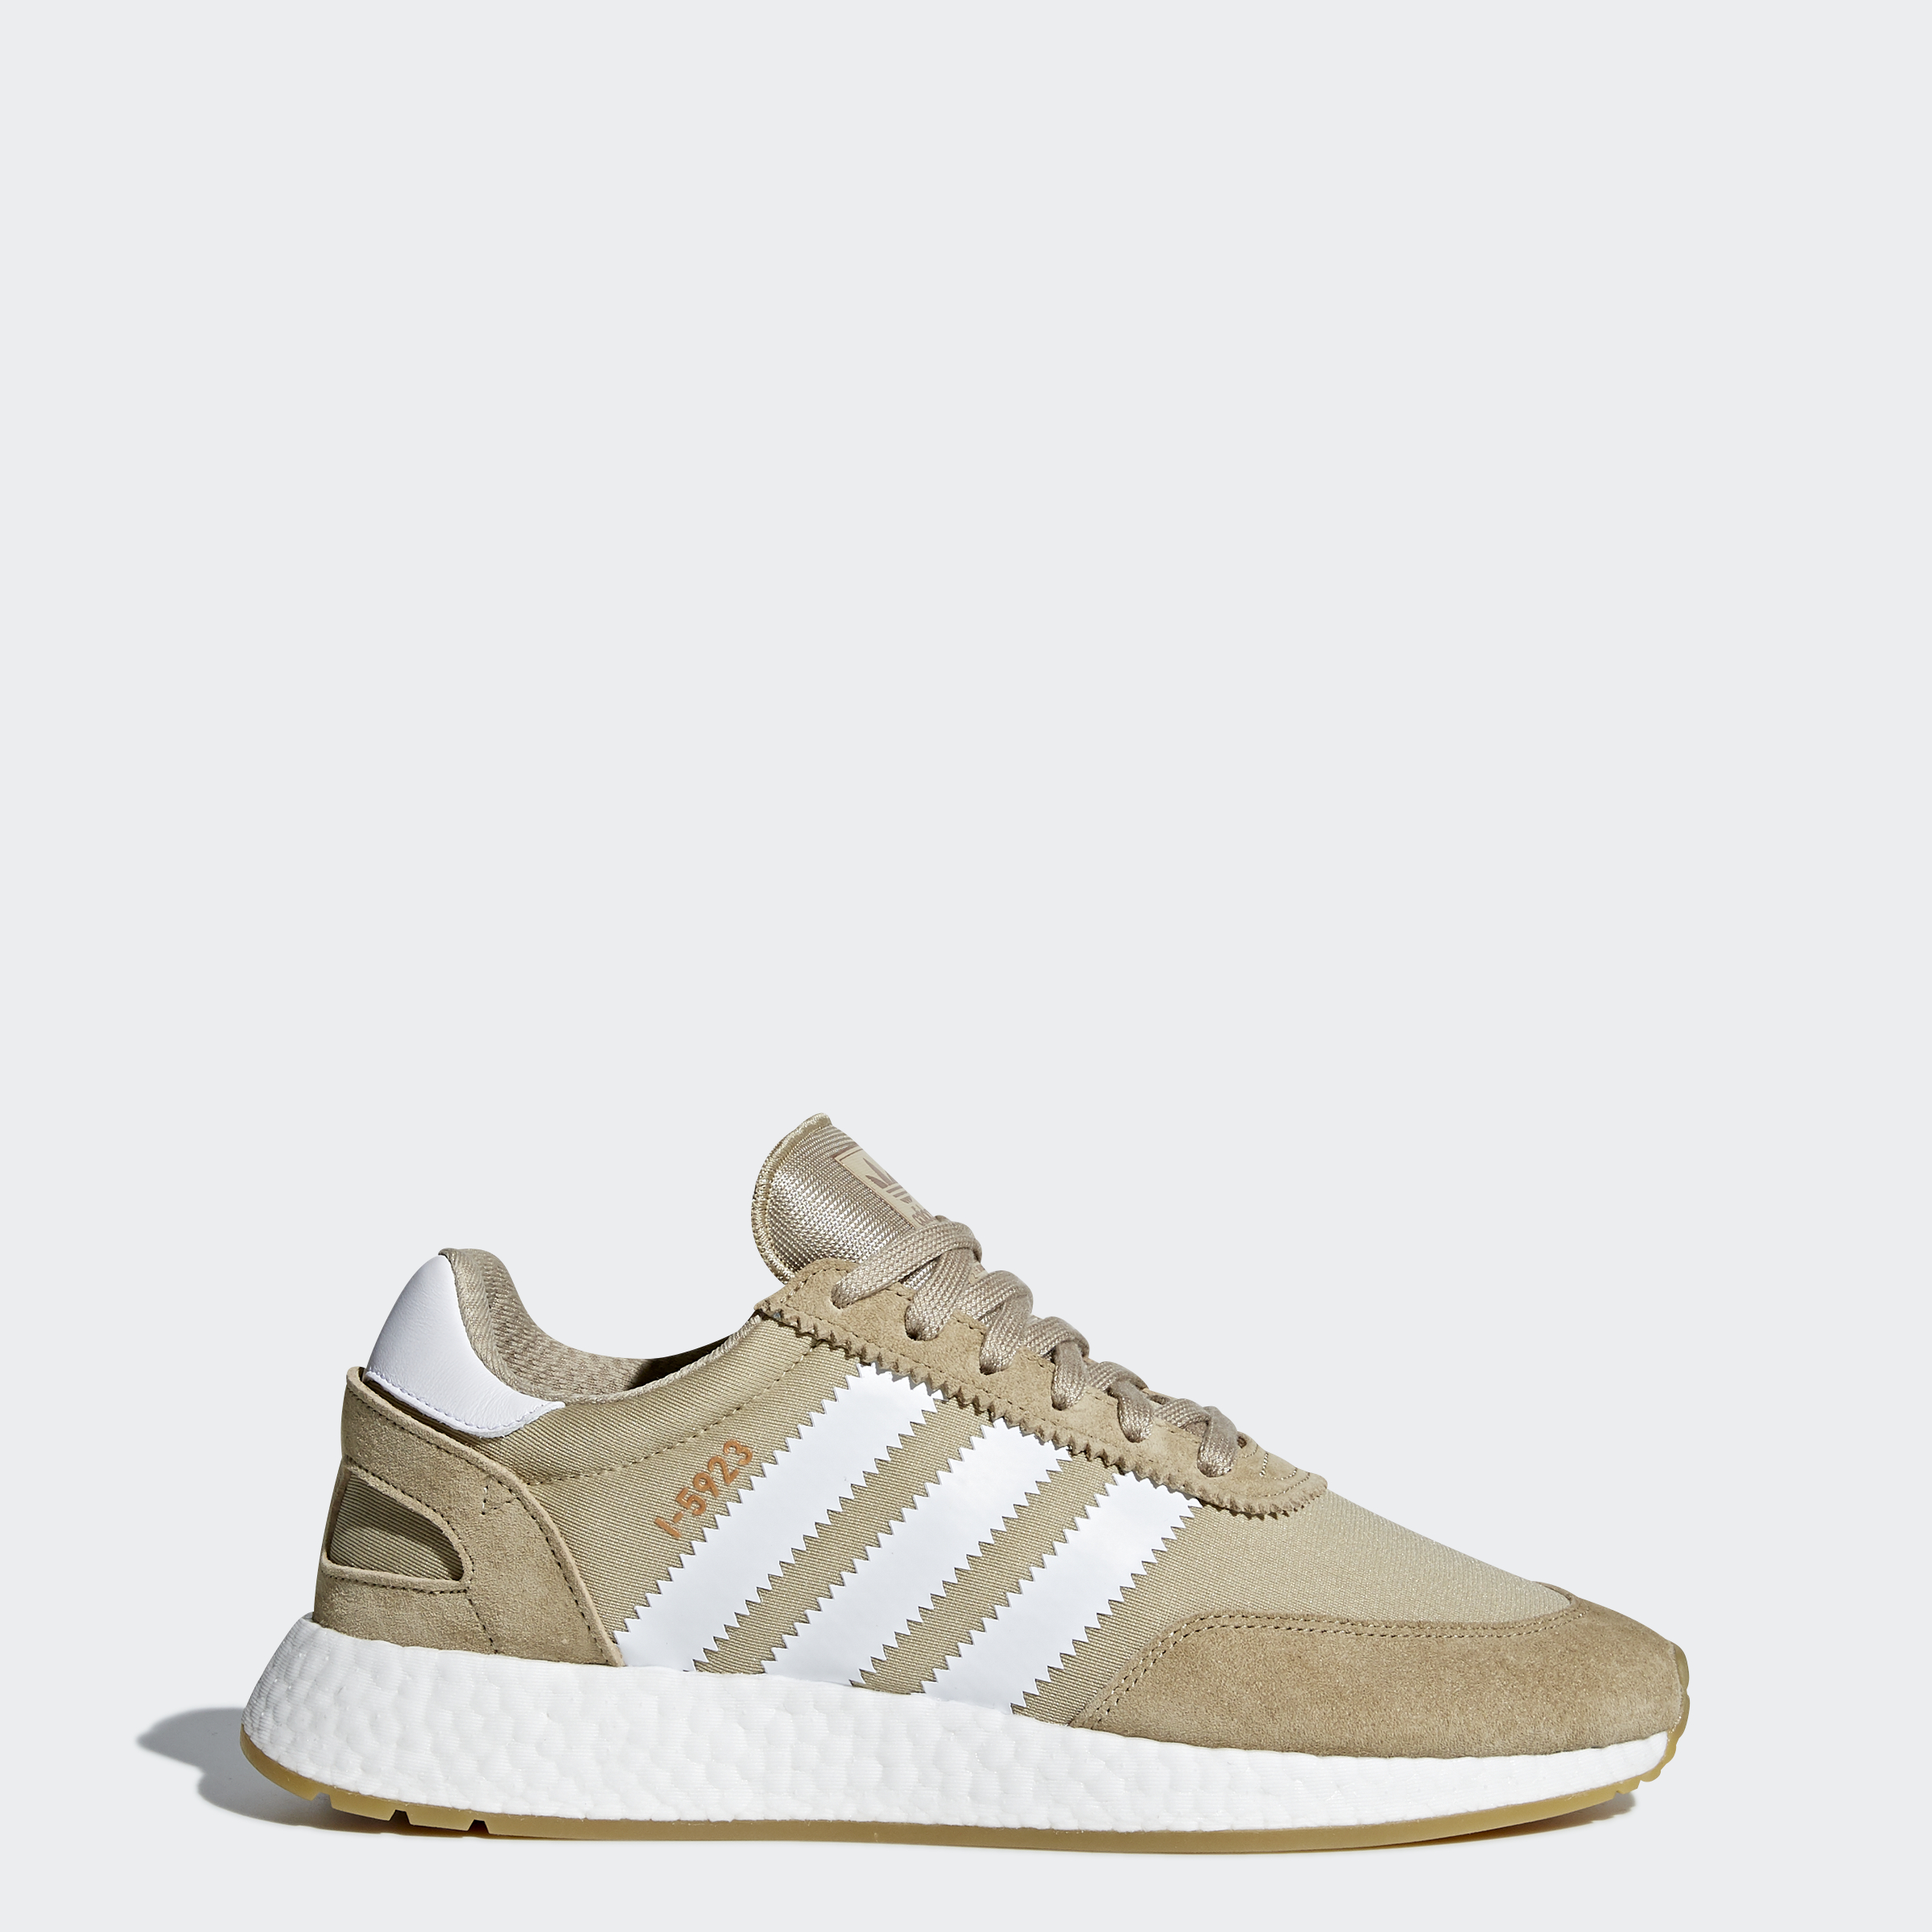 adidas Originals I-5923 Shoes Men's Red Gold / Cloud White / Gum